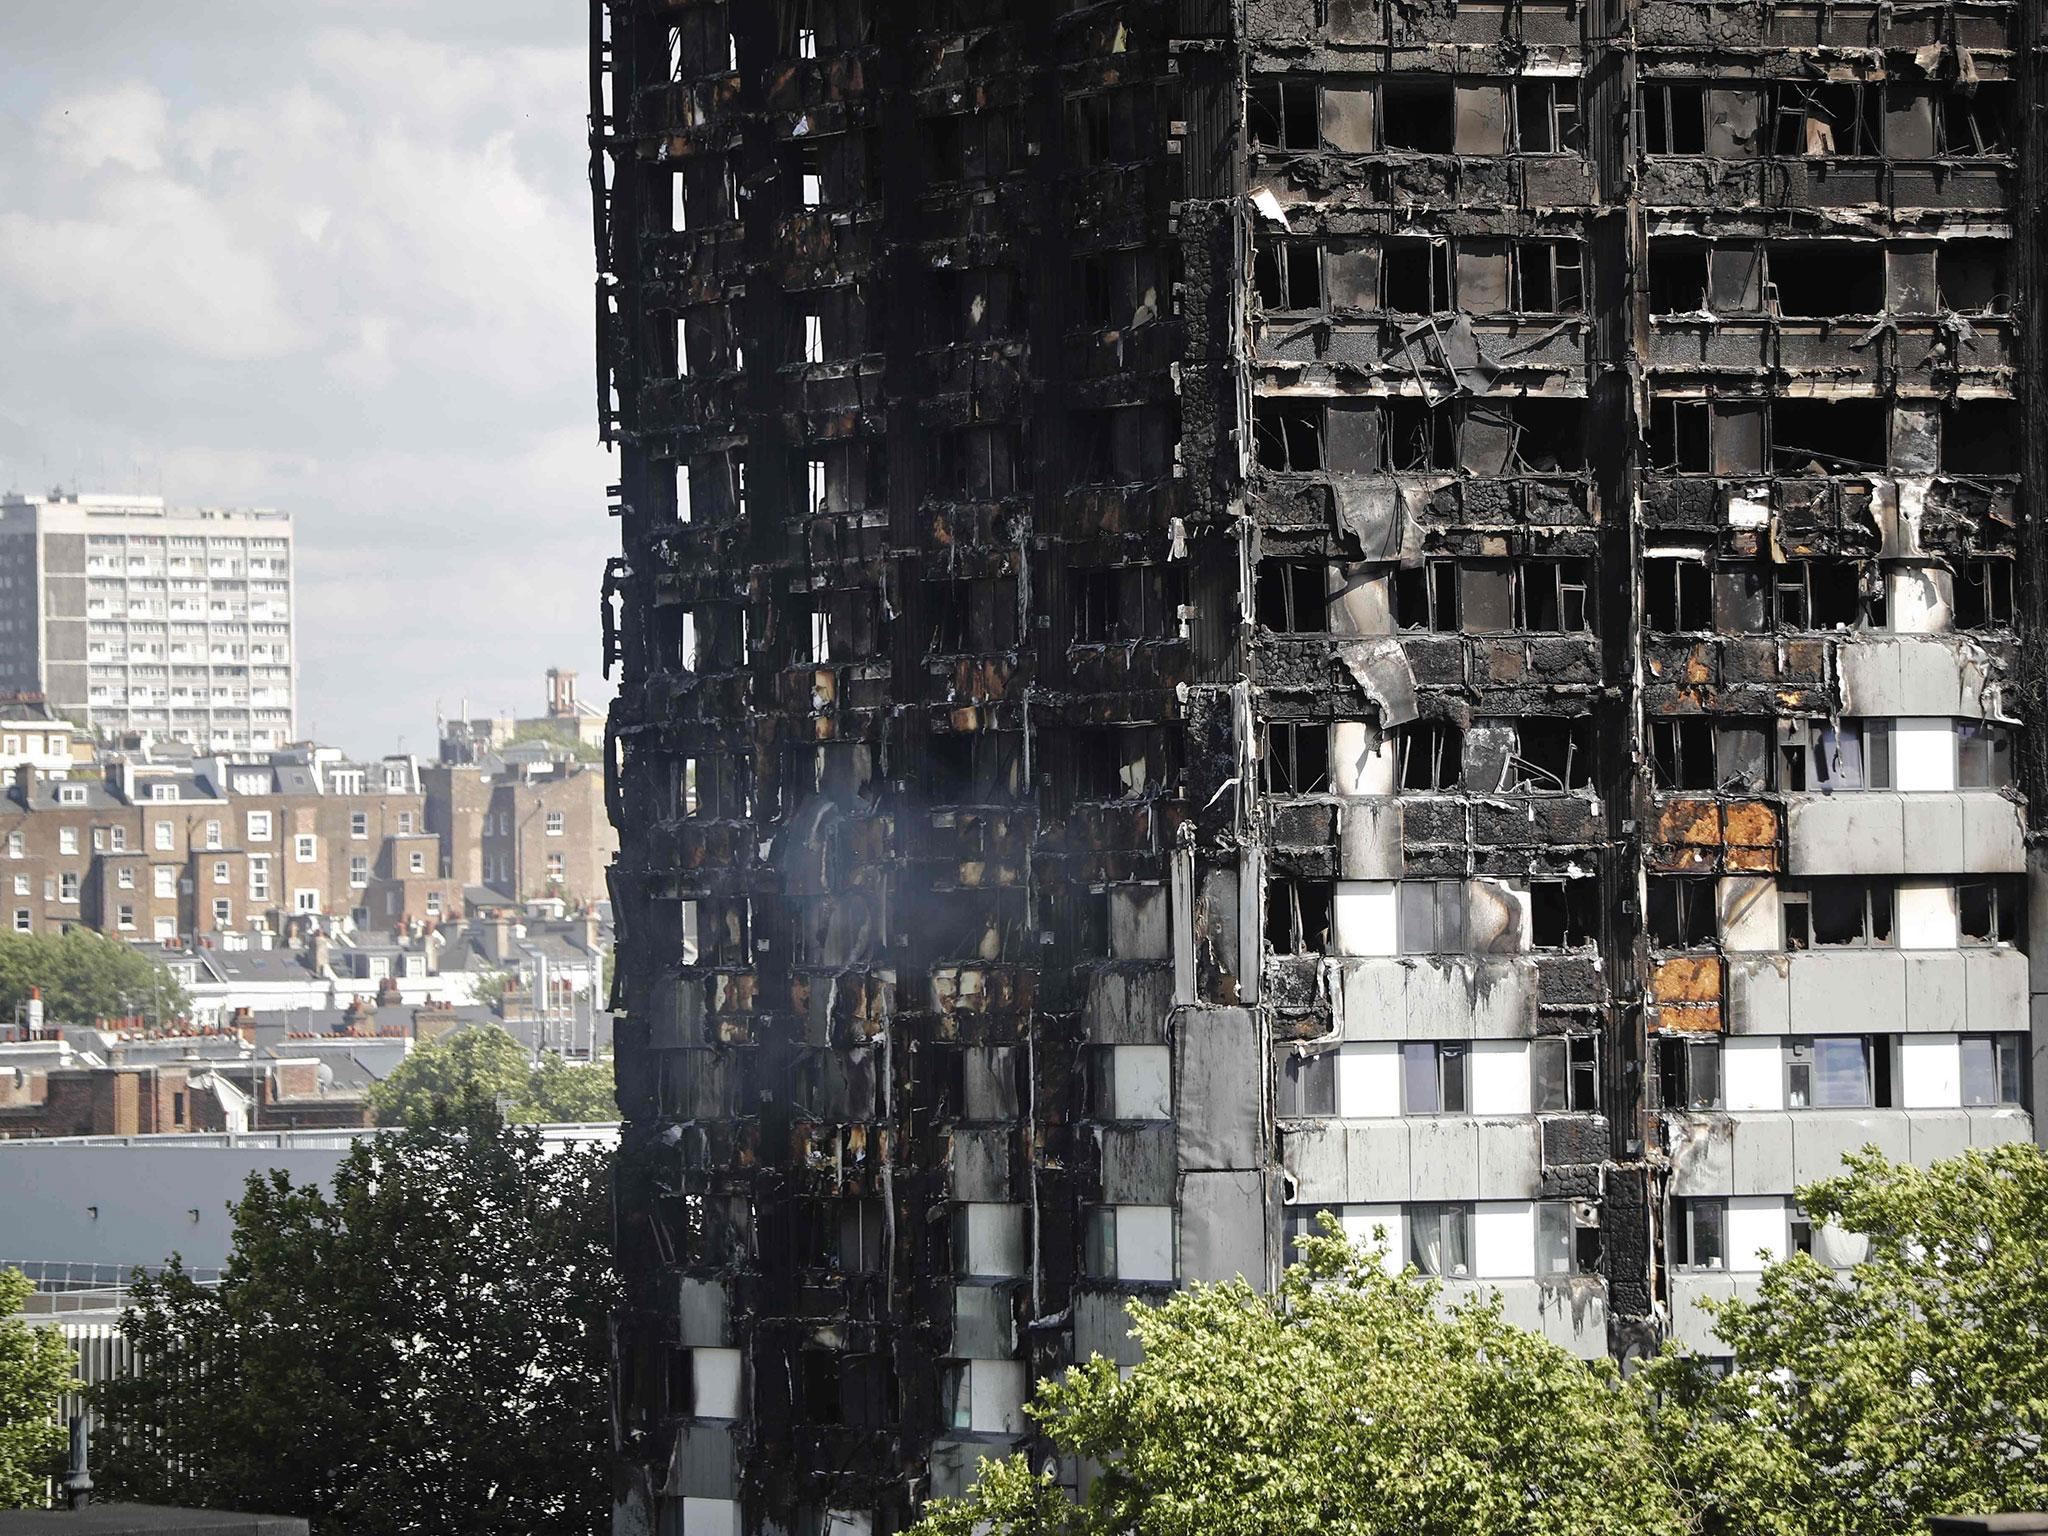 Thousands may be forced to flee homes as tower blocks test positive for 'combustible' cladding